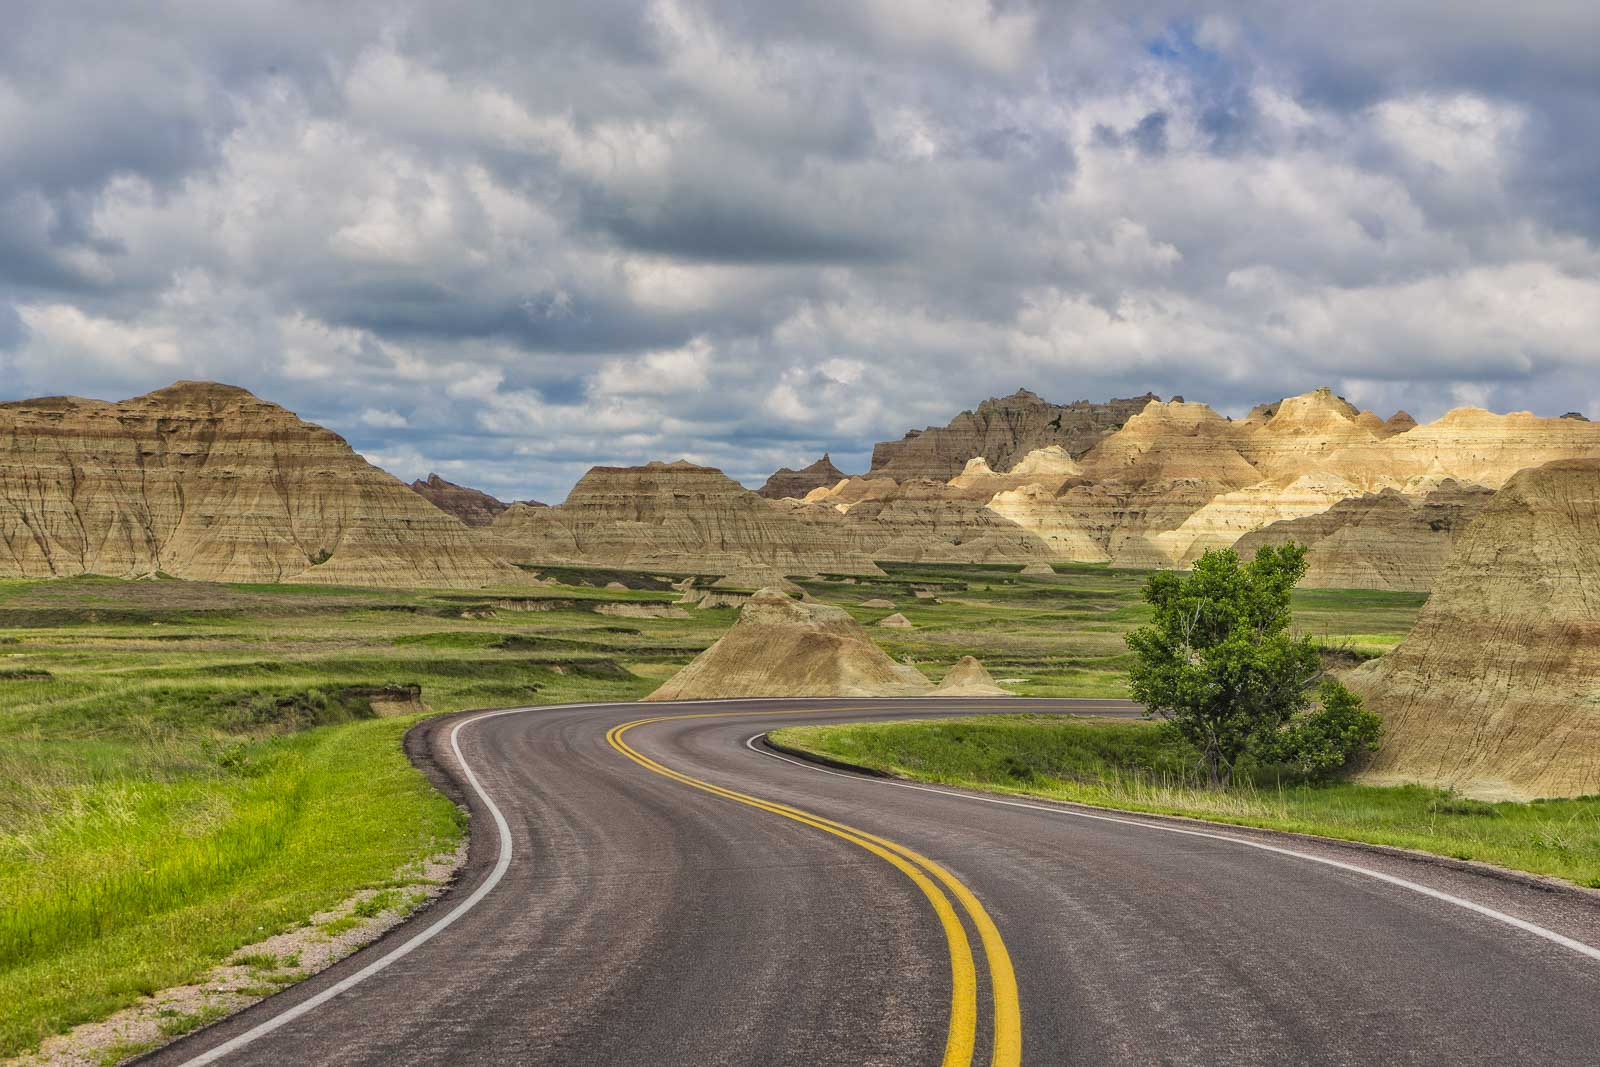 Where to Stay Near Badlands National Park